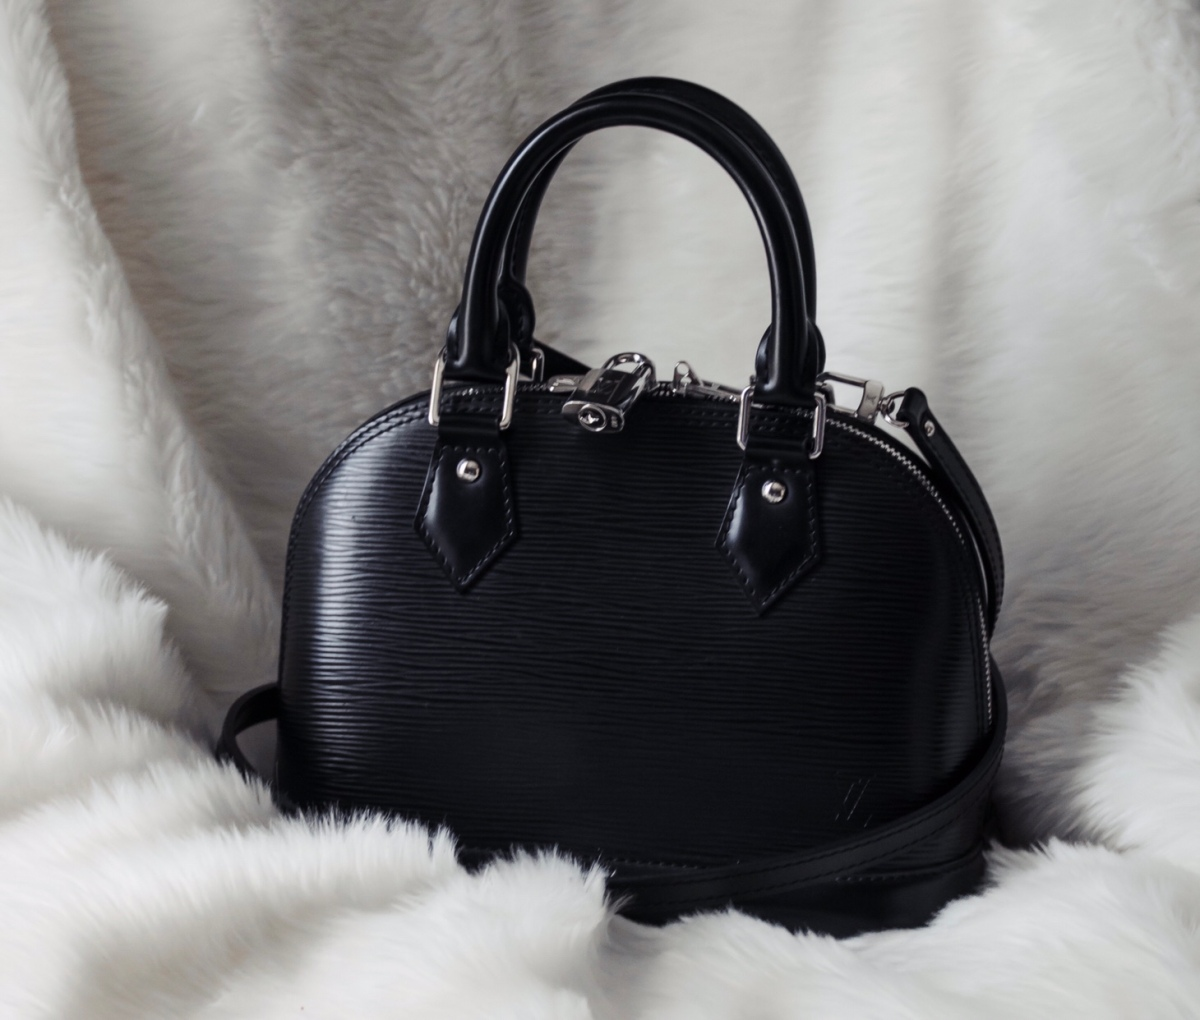 Bag Review: Louis Vuitton Black Epi Alma BB